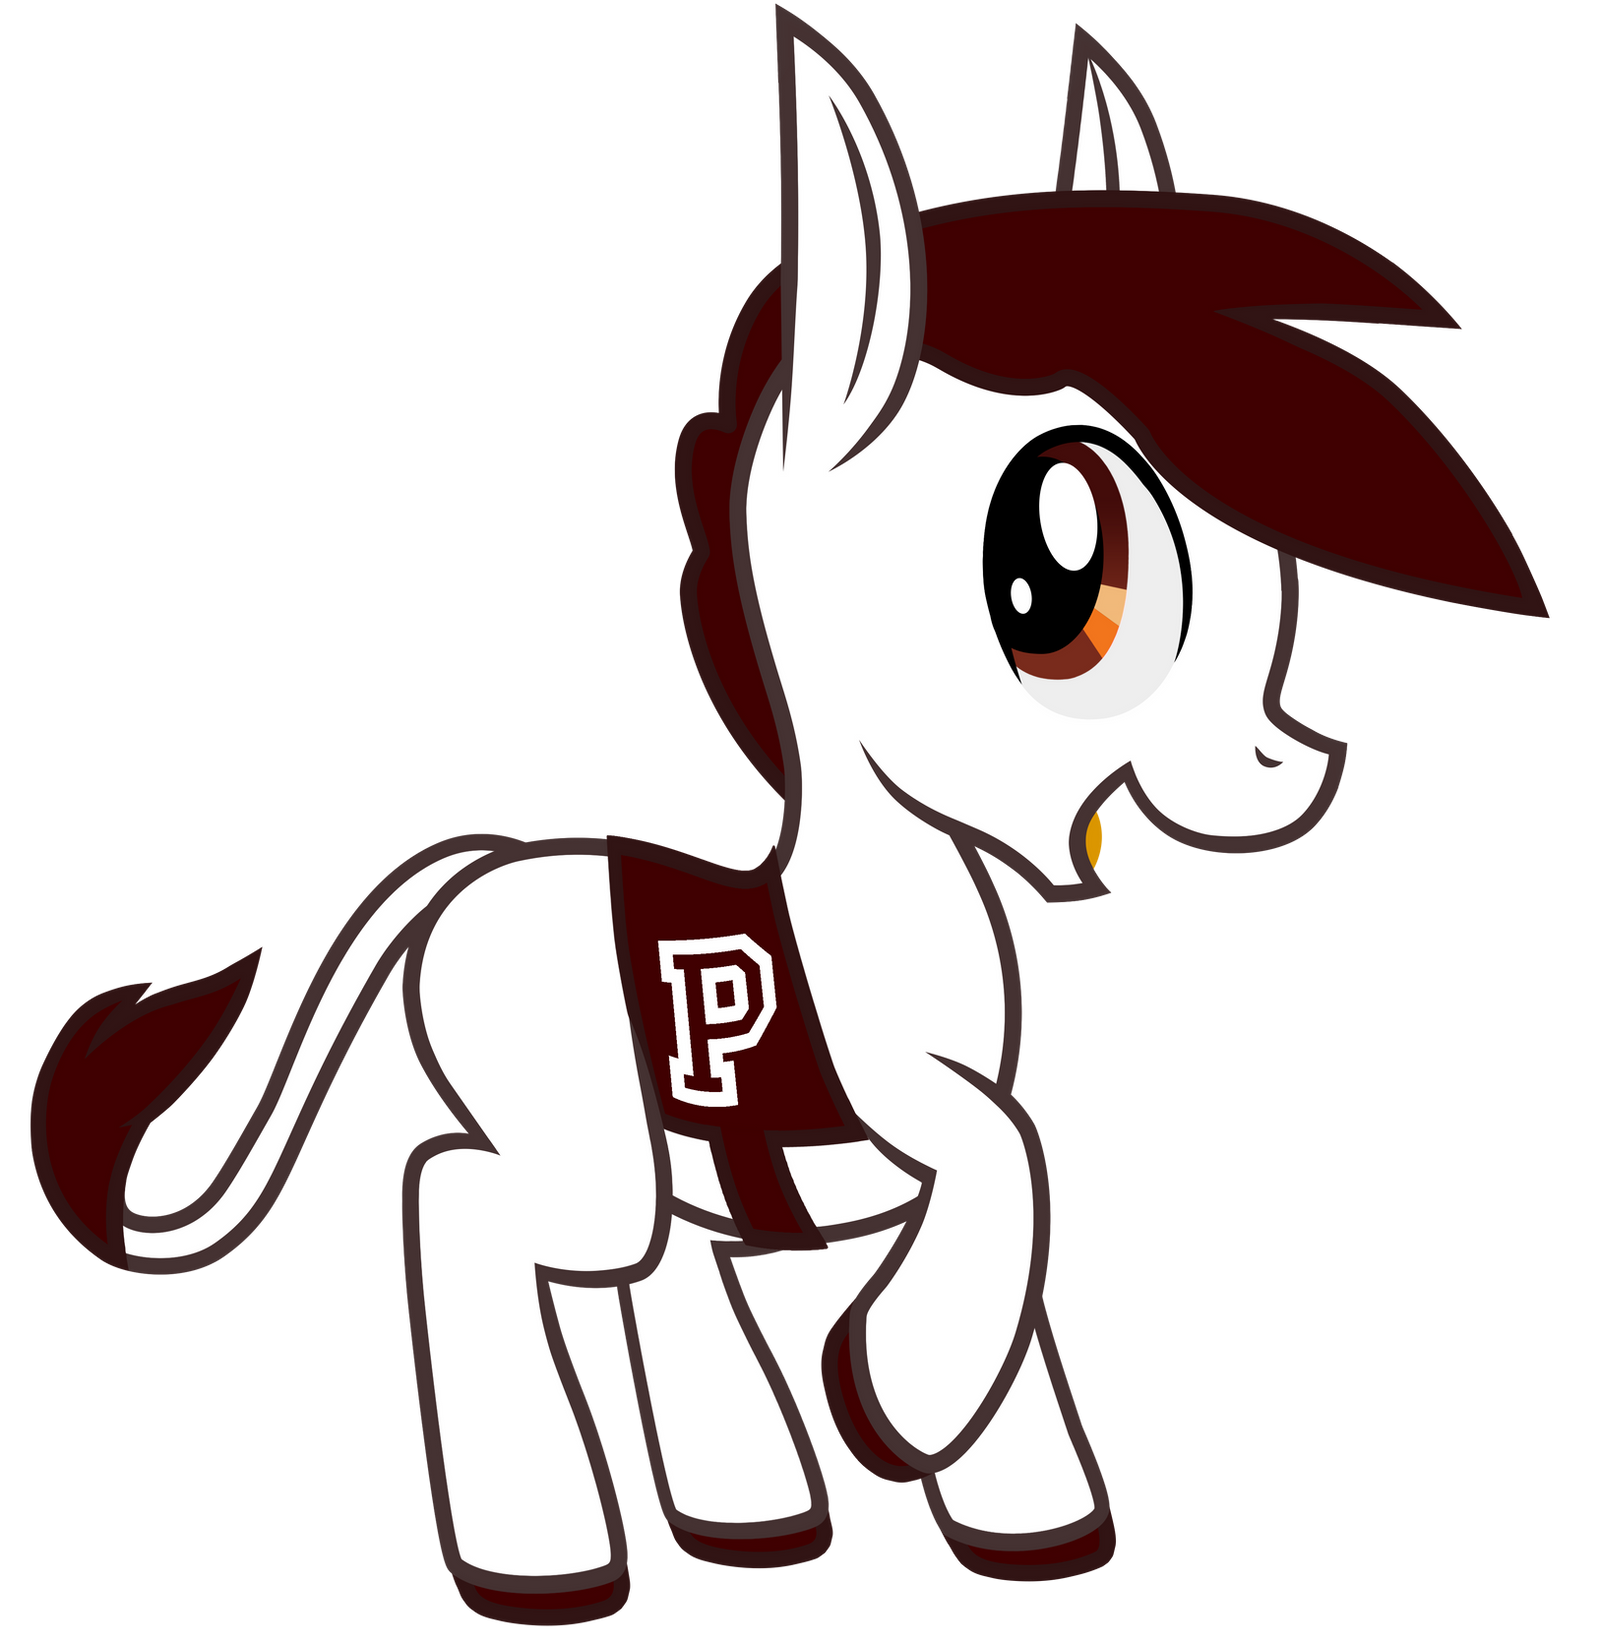 Ipn burrificado by dilvereye on deviantart for Burro blanco